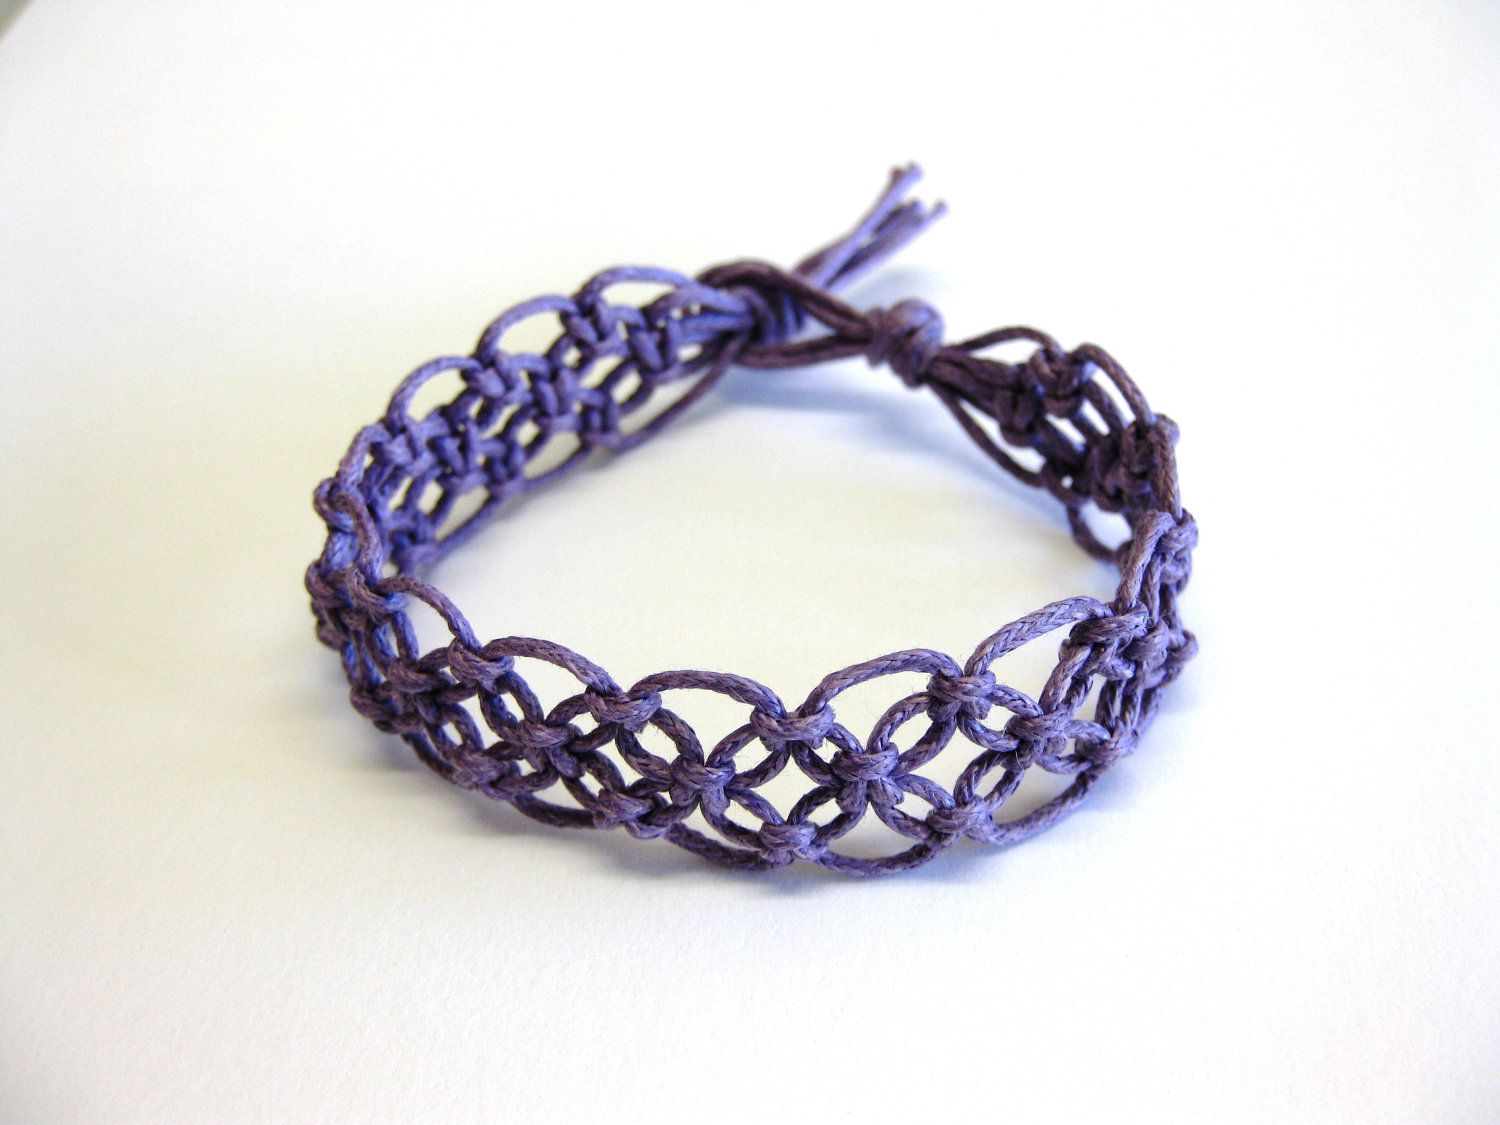 how to make knotted bracelets step by step